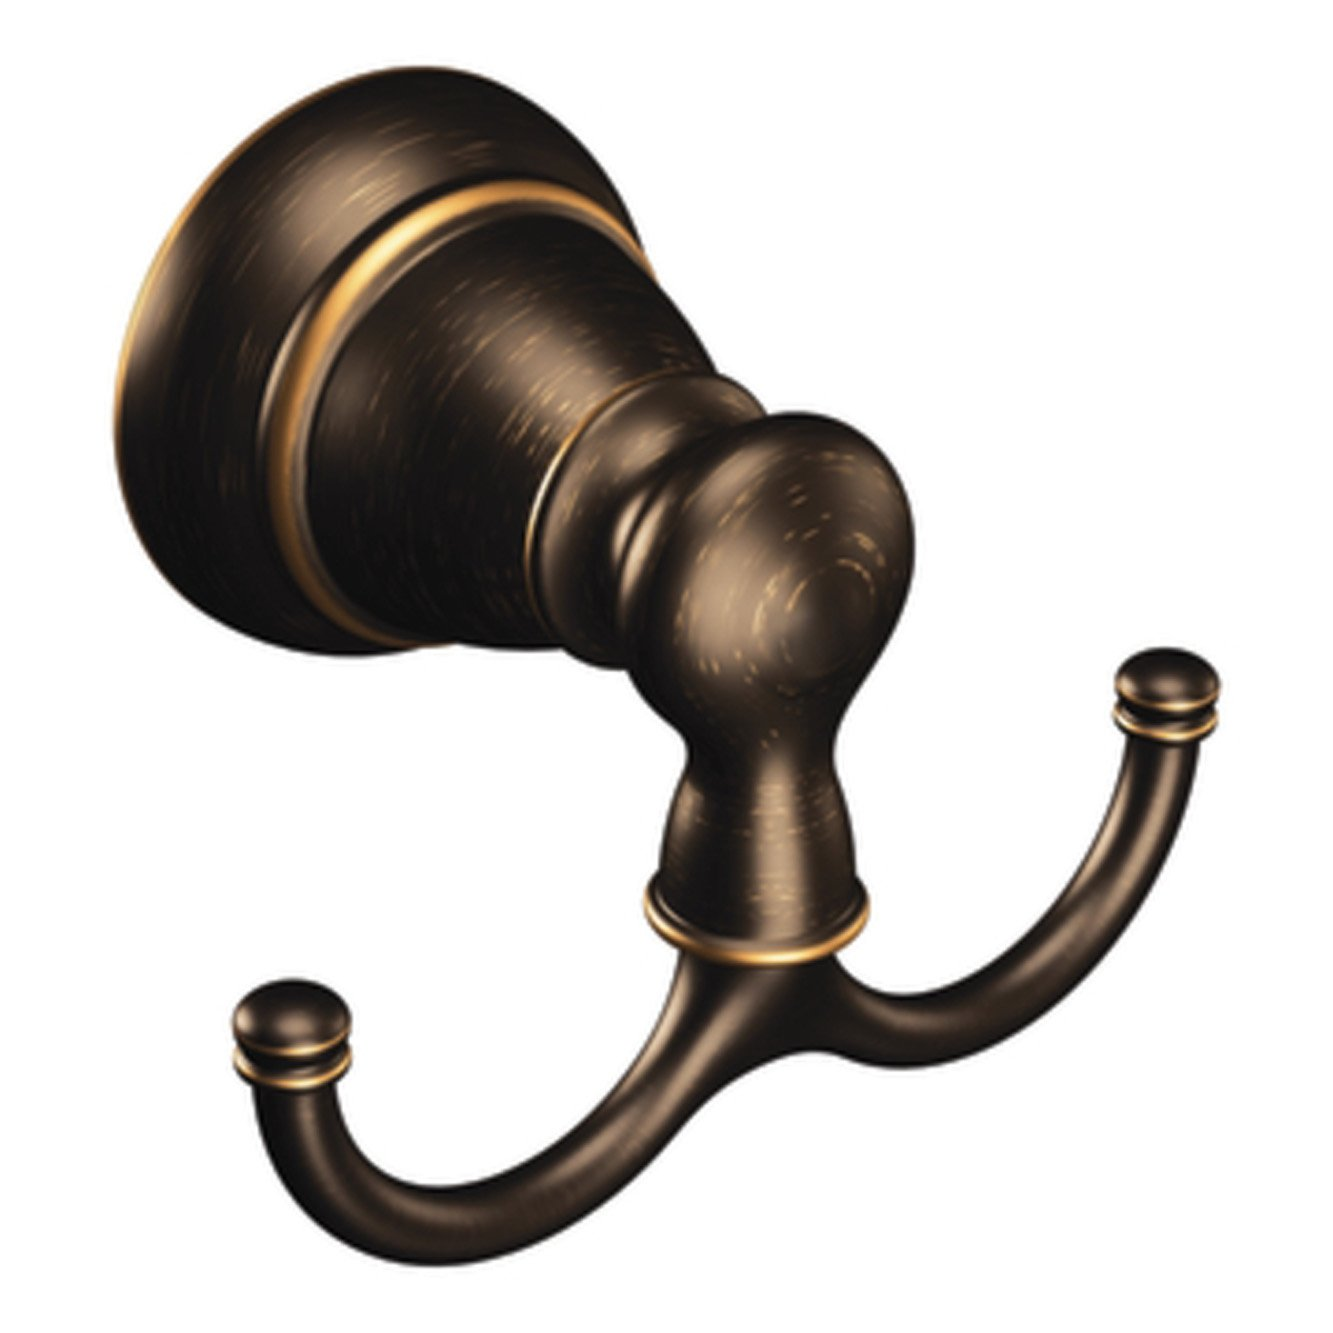 Moen Y2603BRB Banbury Pivoting Robe Hook, Mediterranean Bronze by Moen